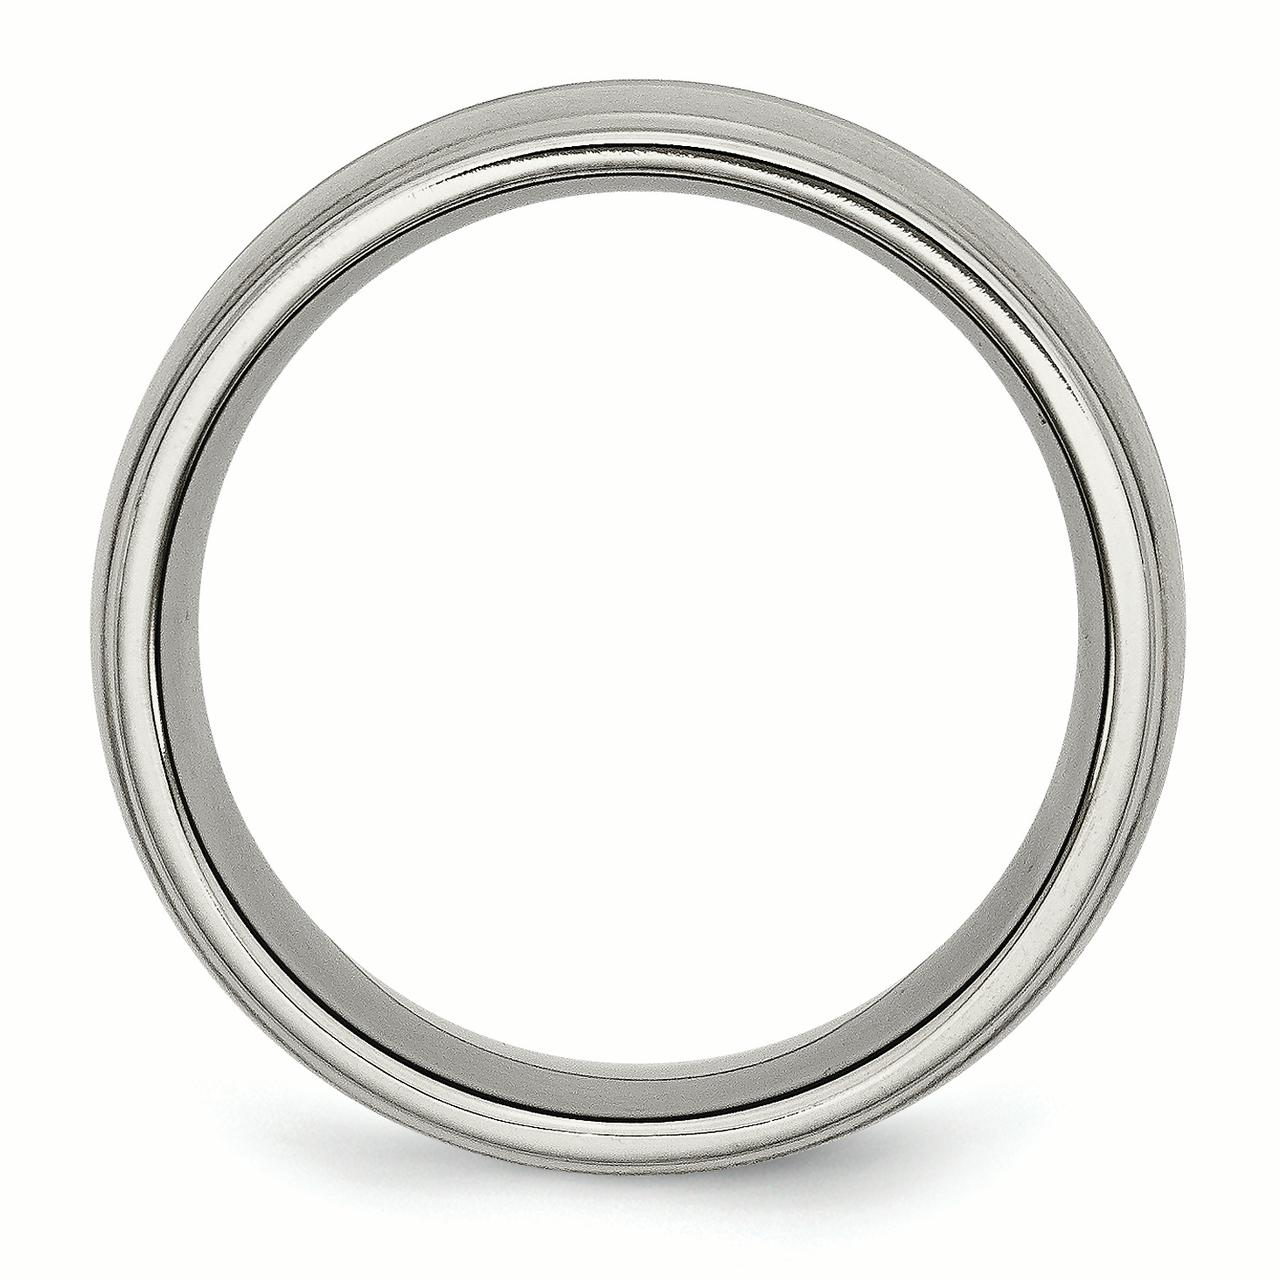 Titanium Grooved Ridged Edge 10mm Brushed and Polished Band Size 14 - image 1 de 3